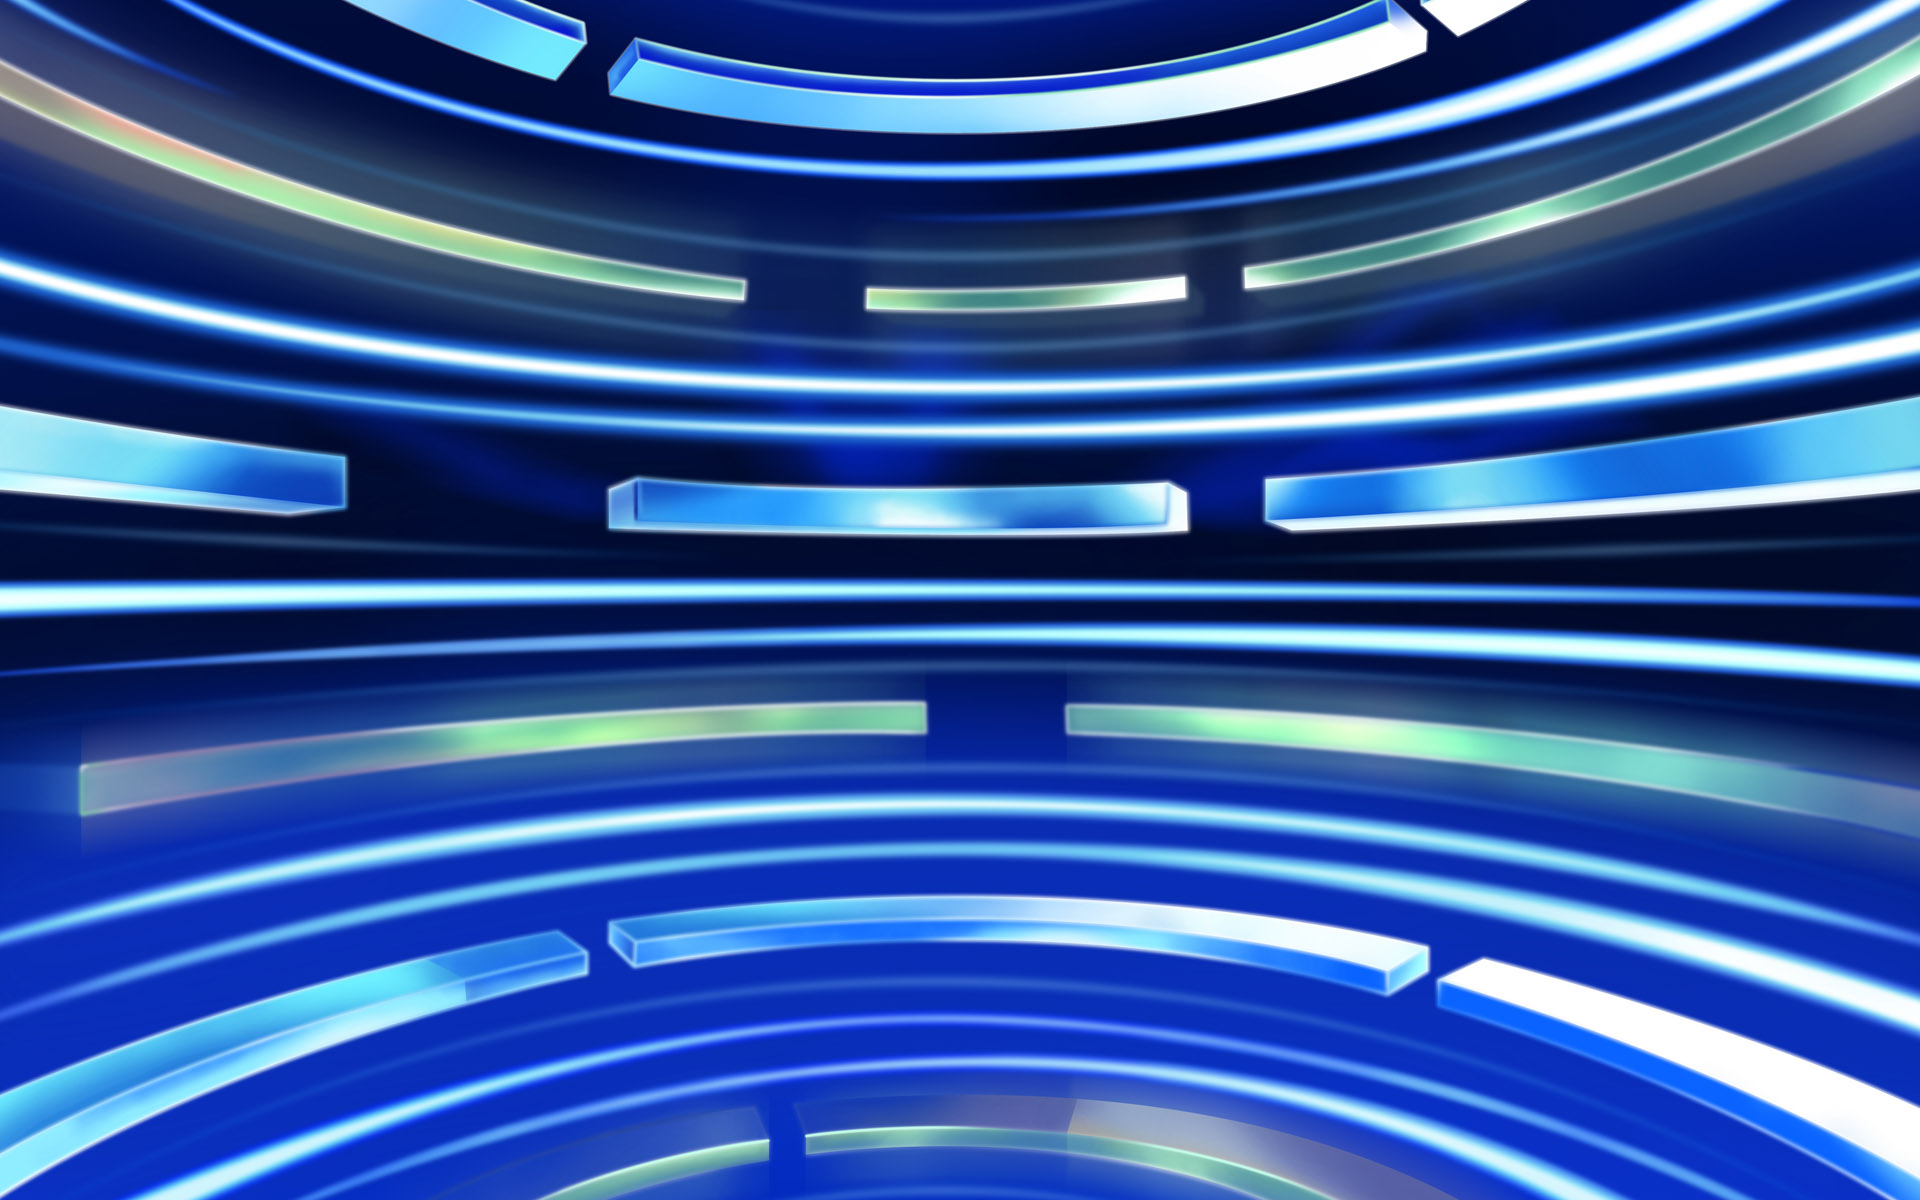 Colorful background of high-definition 20441